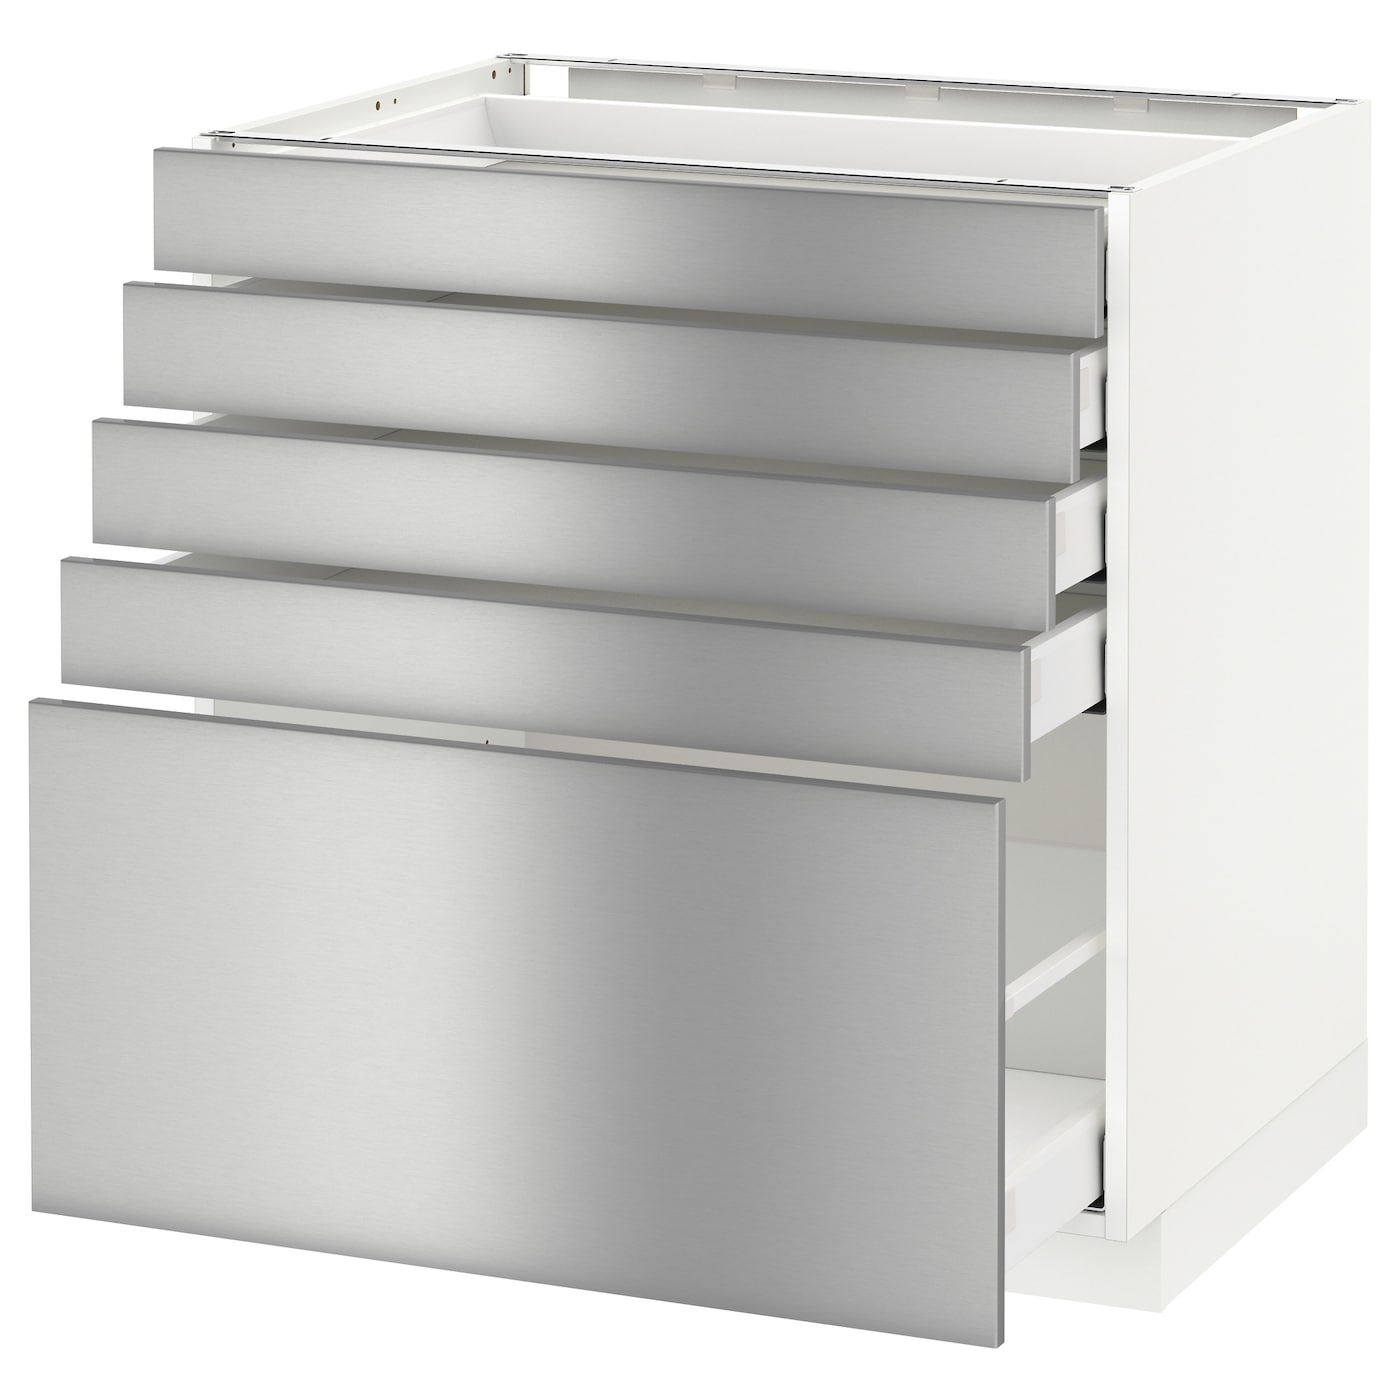 Metod maximera base cabinet with 5 drawers white grevsta for Stainless steel drawers kitchen